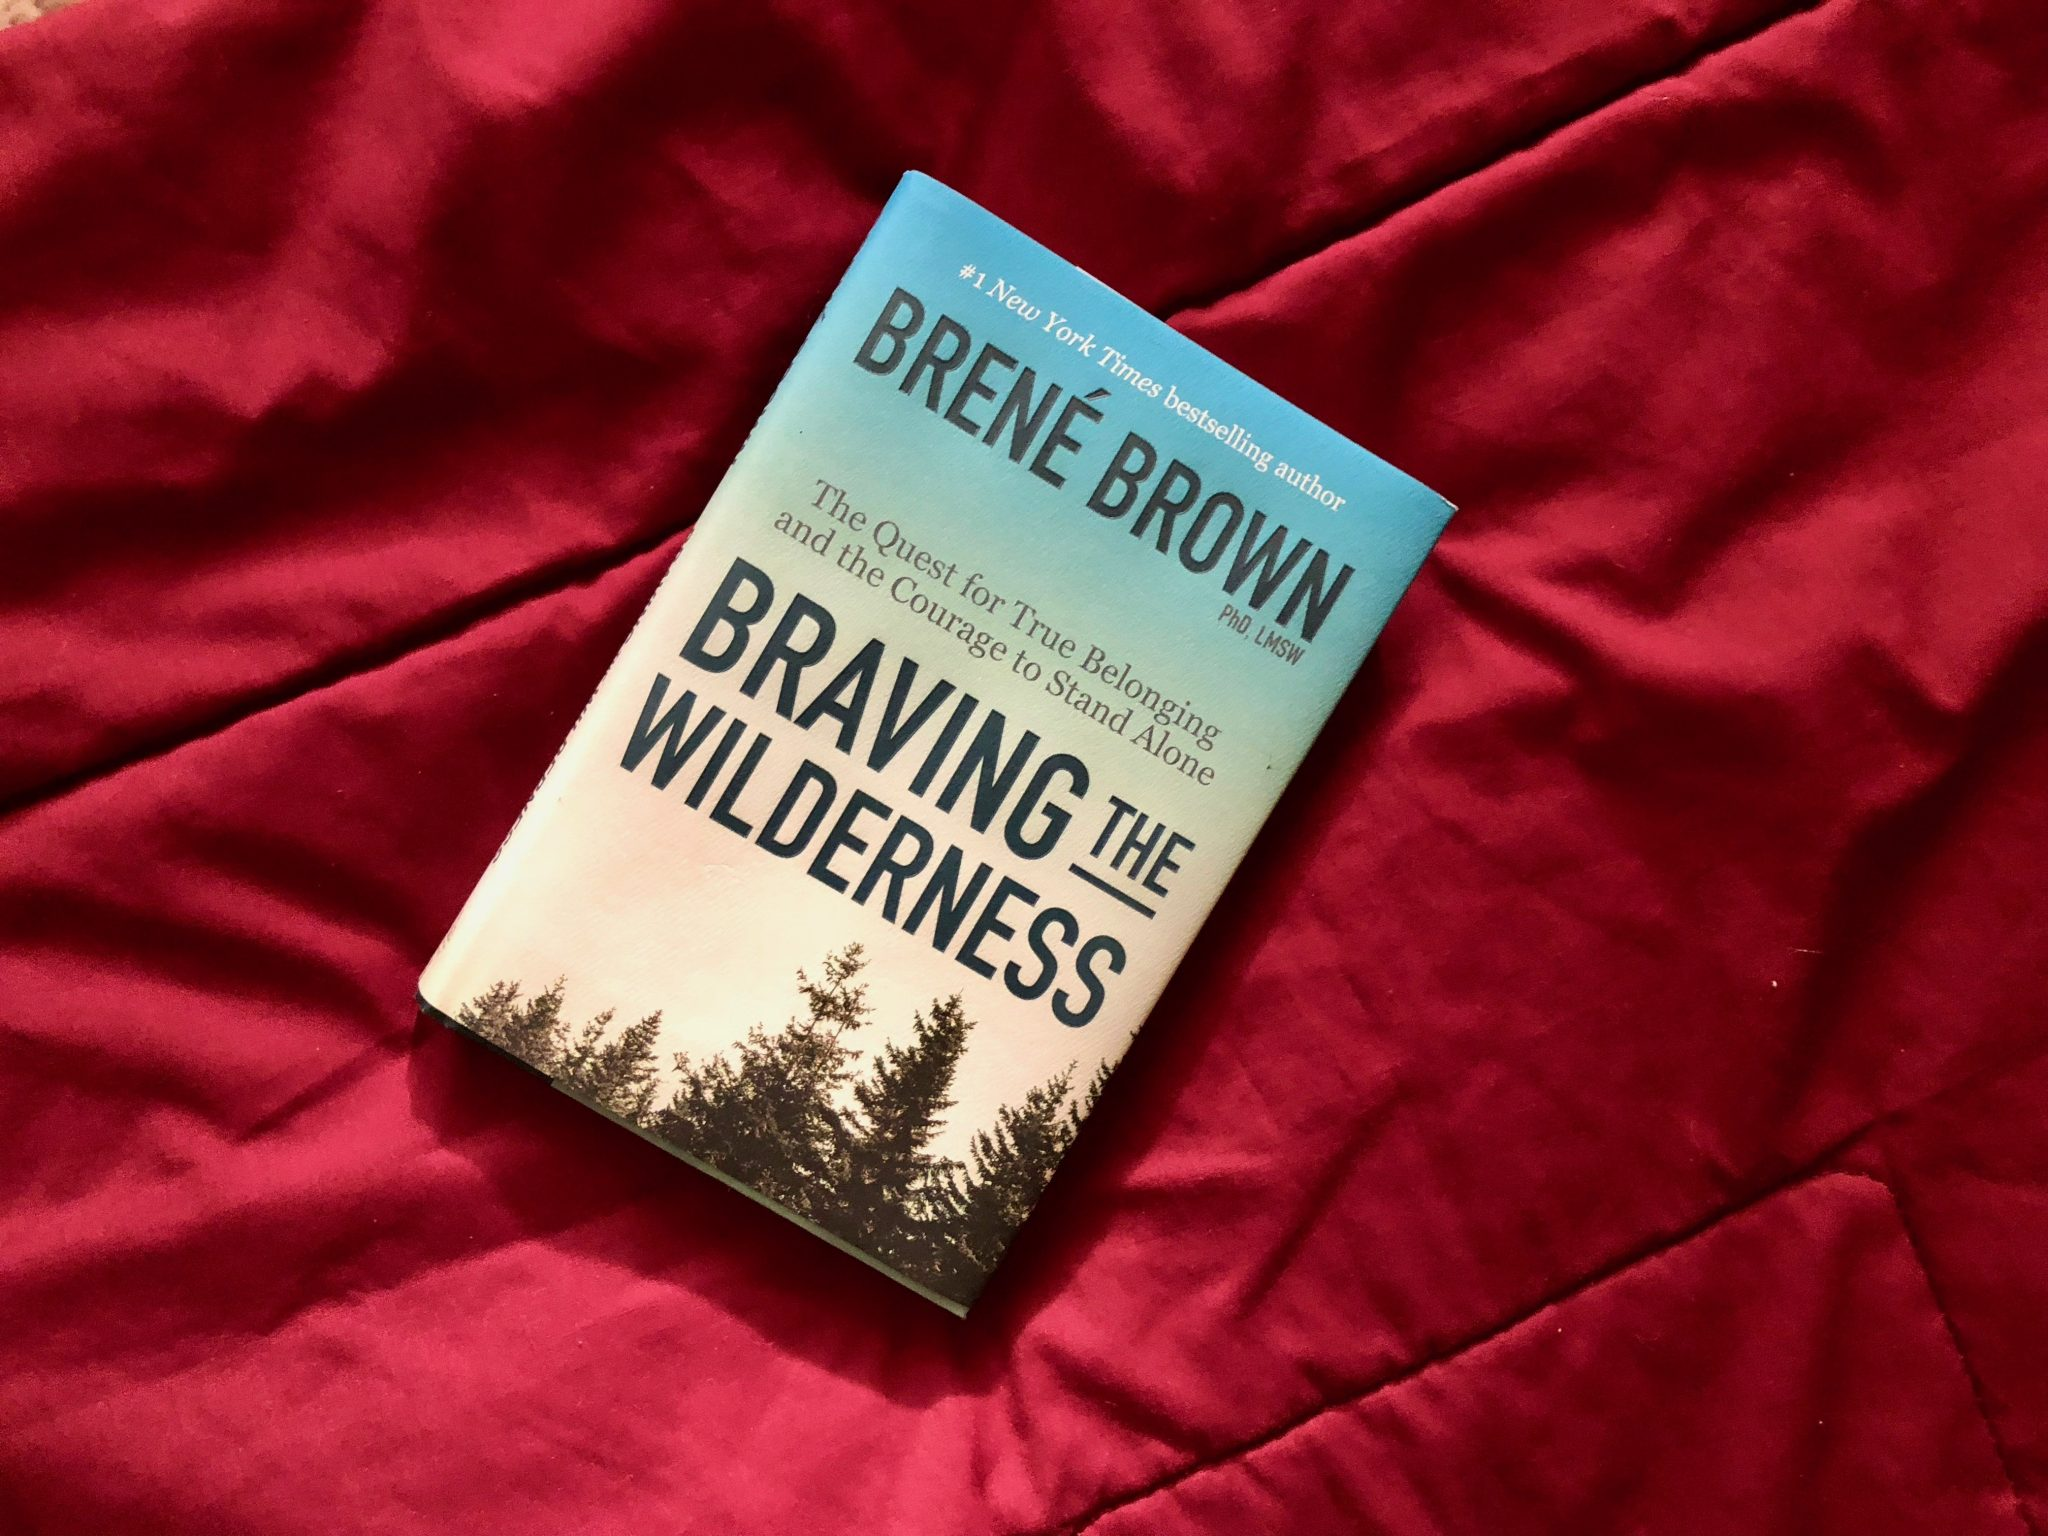 Wrap Up: February 2018 - Braving the Wilderness by Brene Brown